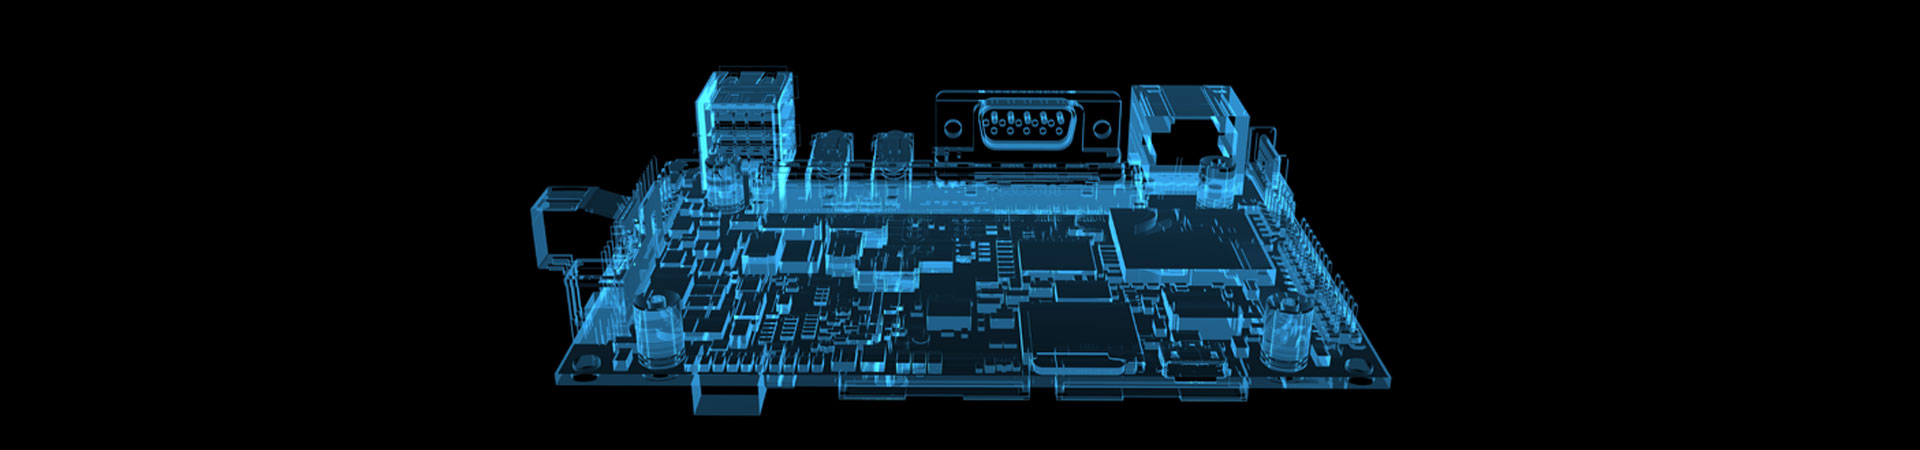 Motherboard x-ray